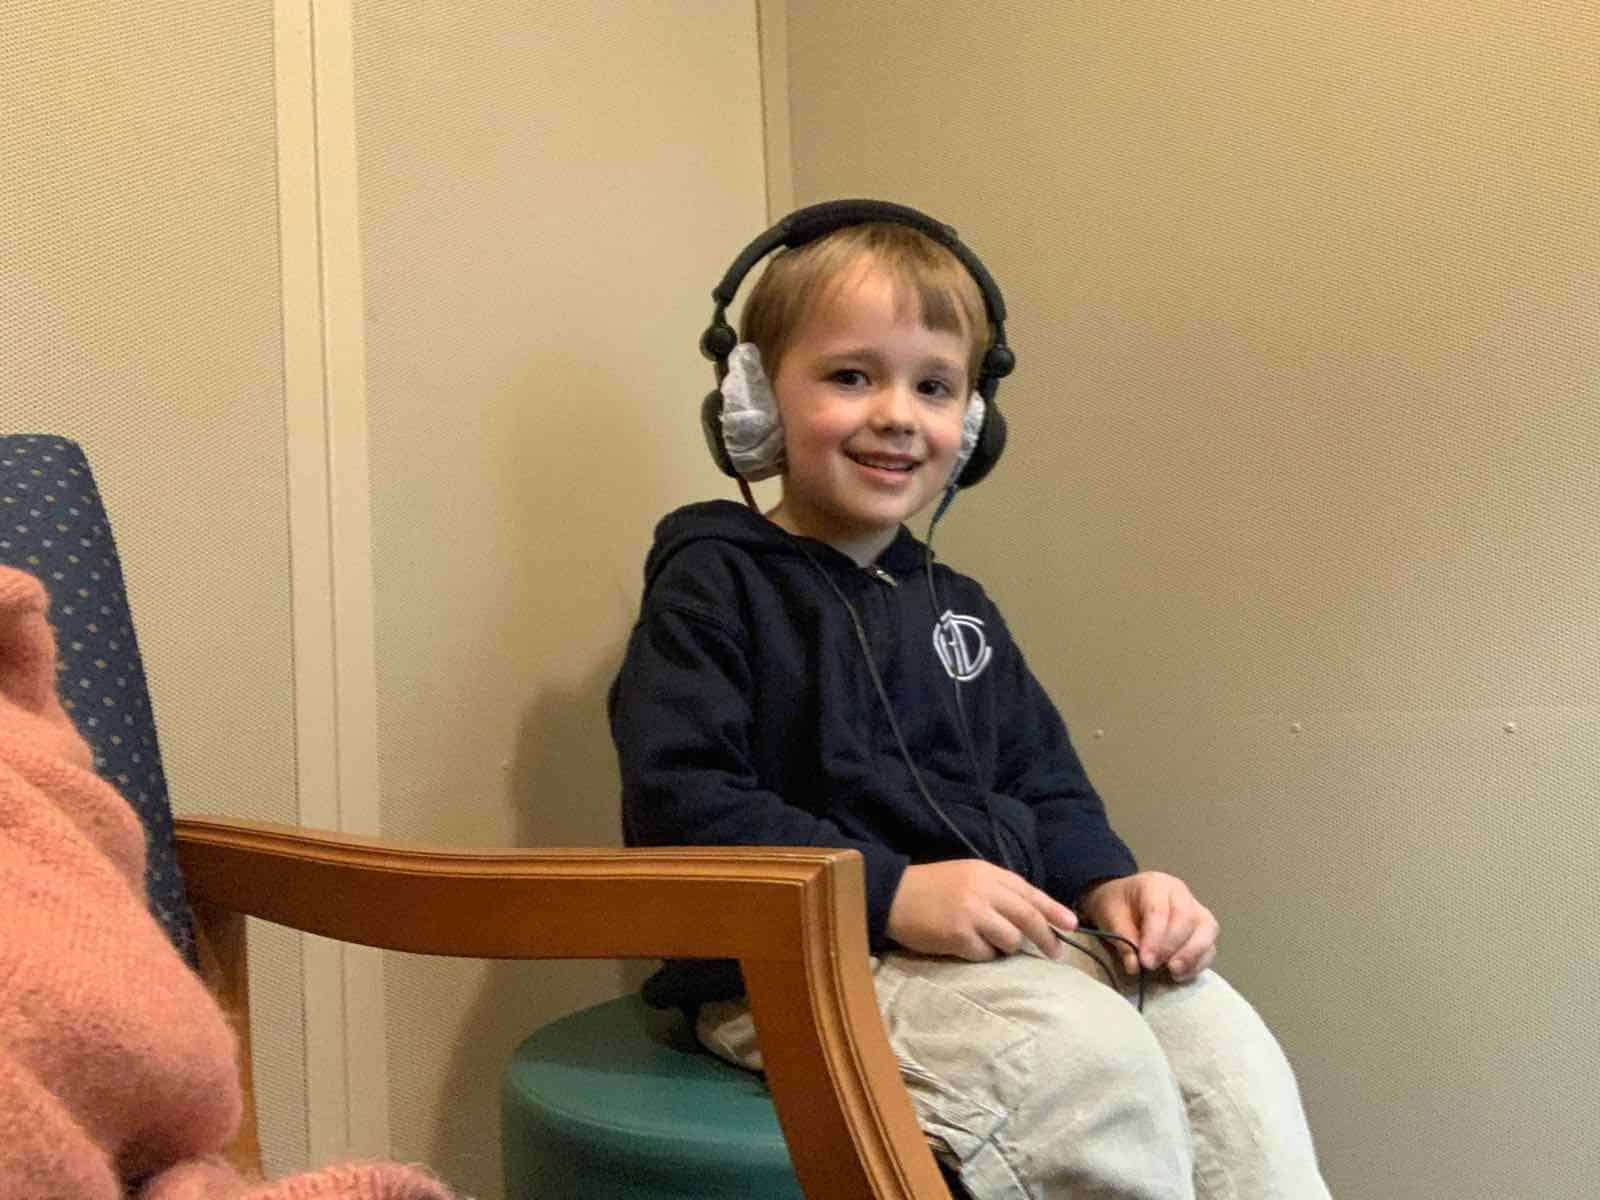 hearing test- One year with ear tubes